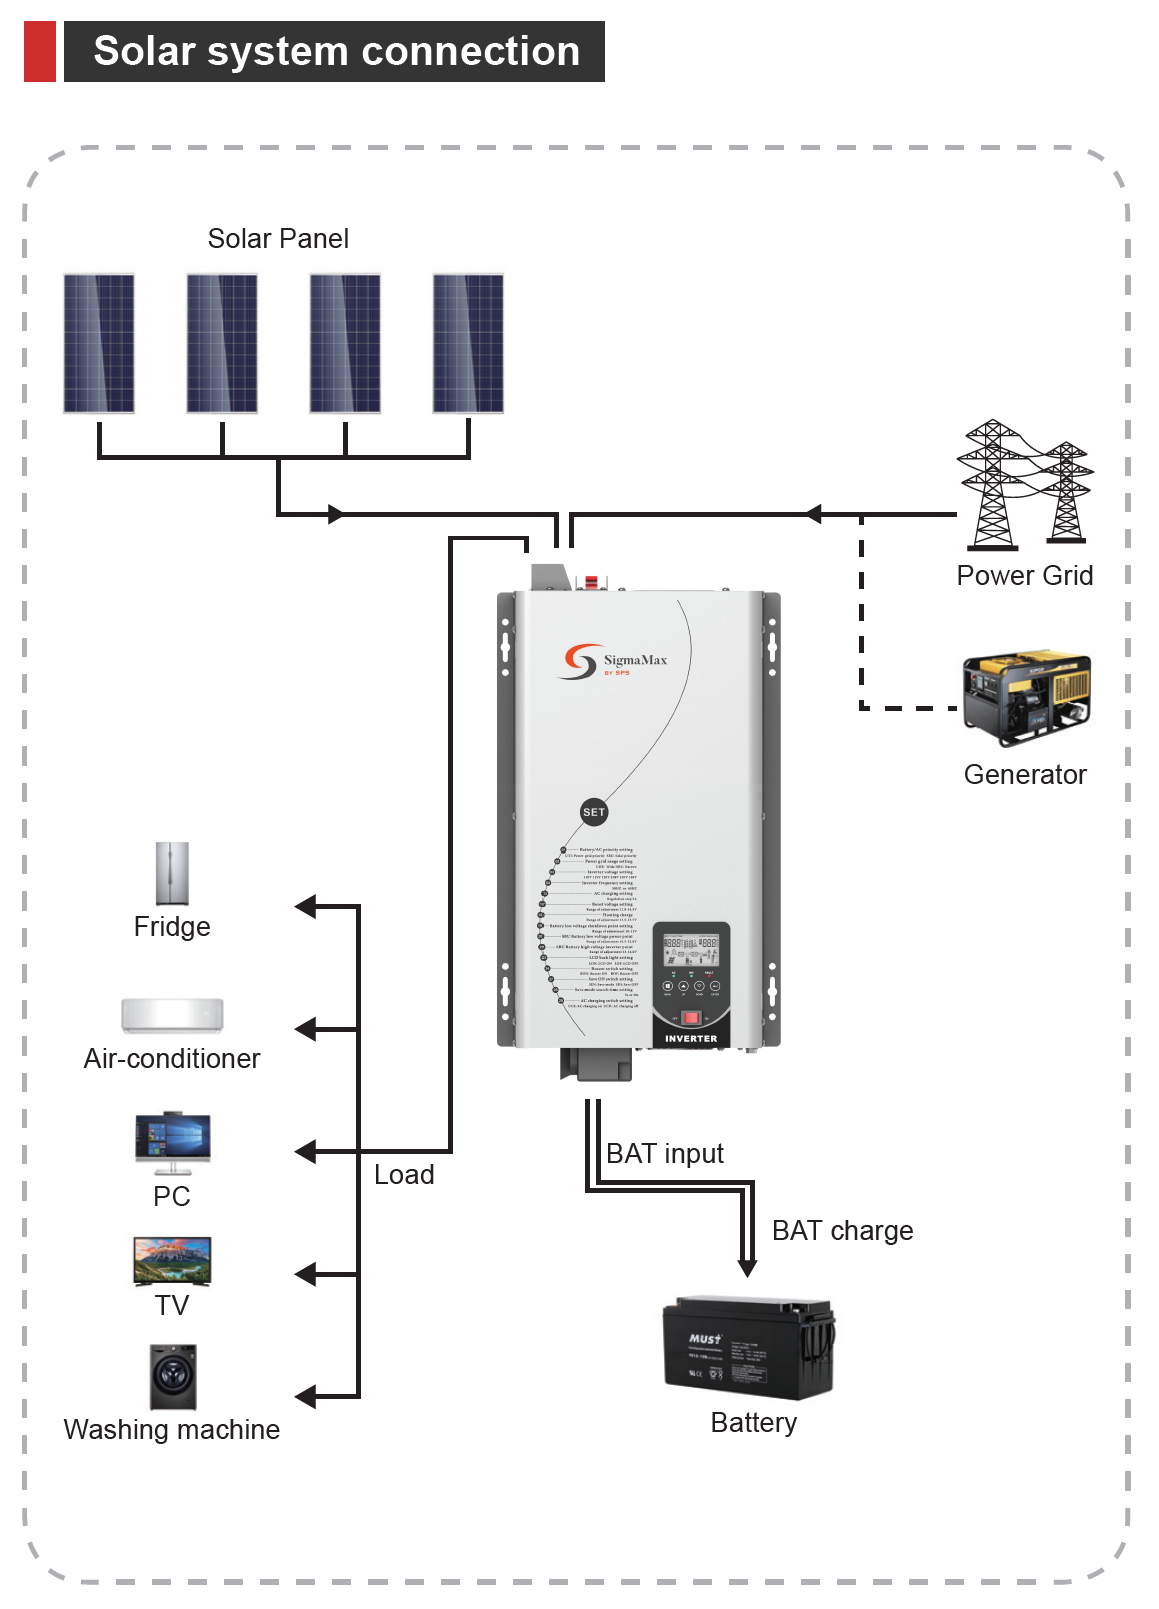 split phase 124v pure sine wave solar charger inverter, 6000w pure sine wave inverter, whole home battery backup, battery backup, pure sine wave inverter, solar inverter, inverter with solar controller, pure sine wave inverter with solar controller, battery backup with solar, inverter compatible with generator, off grid ups, RV inverter, boat inverter, home inverter